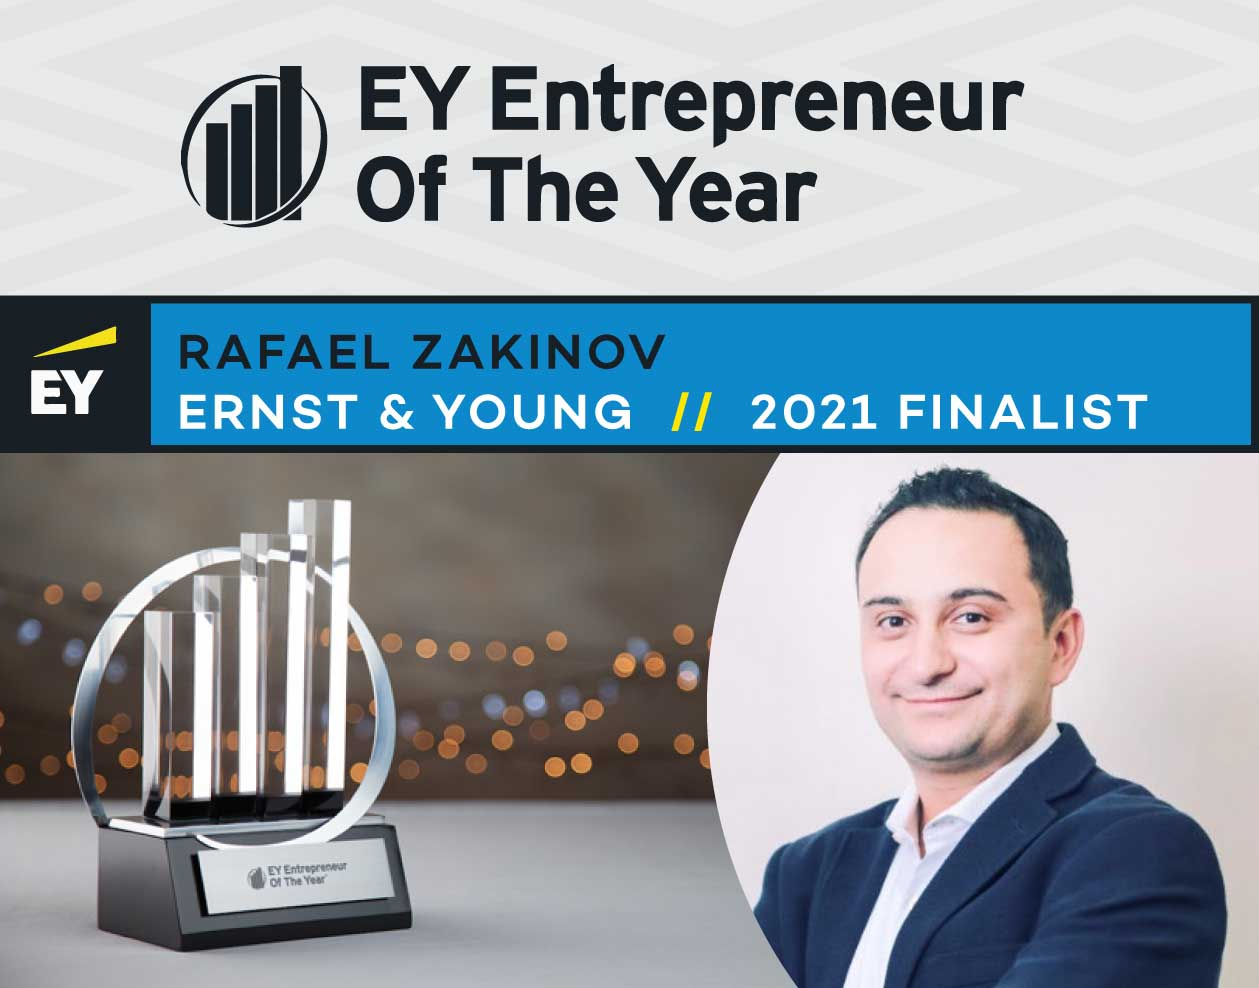 Founder and CEO Rafael Zakinov Named to Ernst & Young 2021 Entrepreneur of the Year List